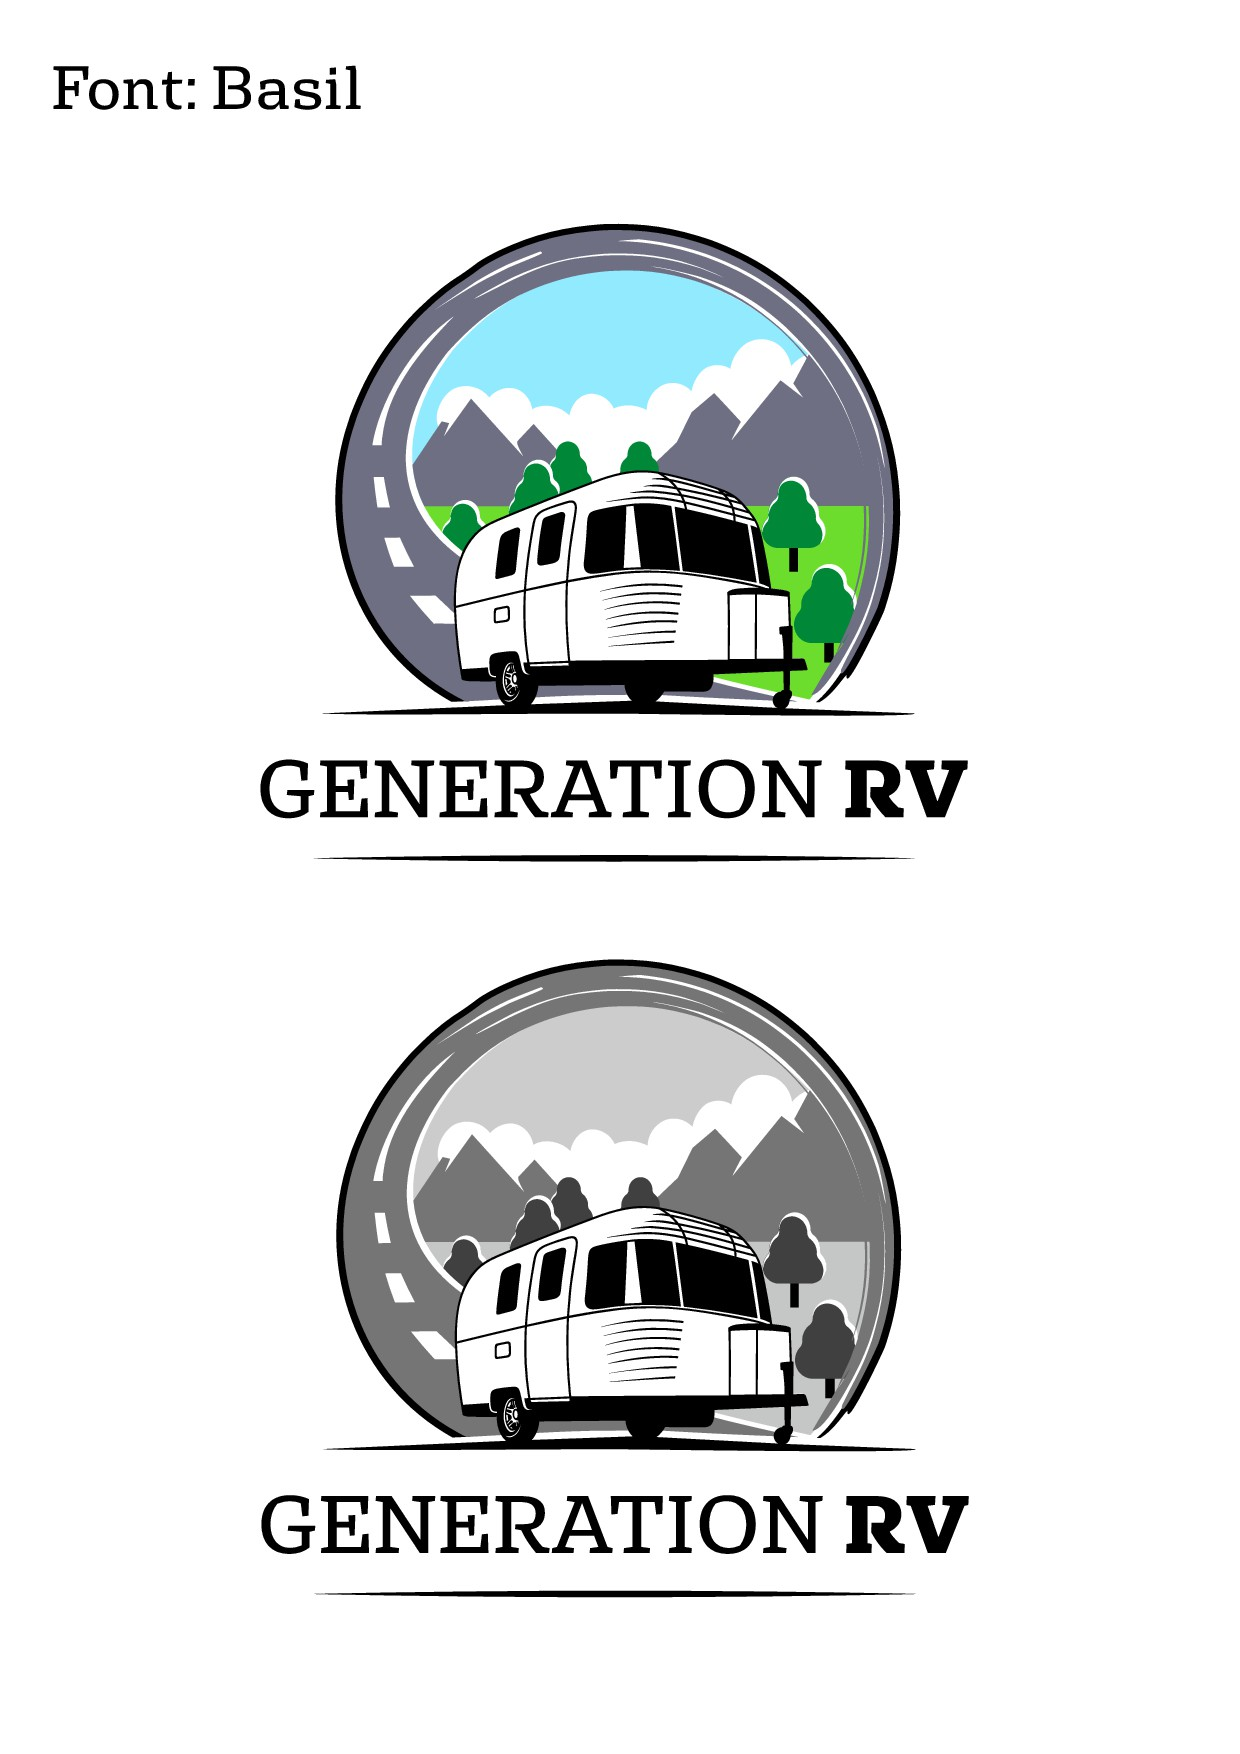 Playful and recognizable RV camper logo and icon for company